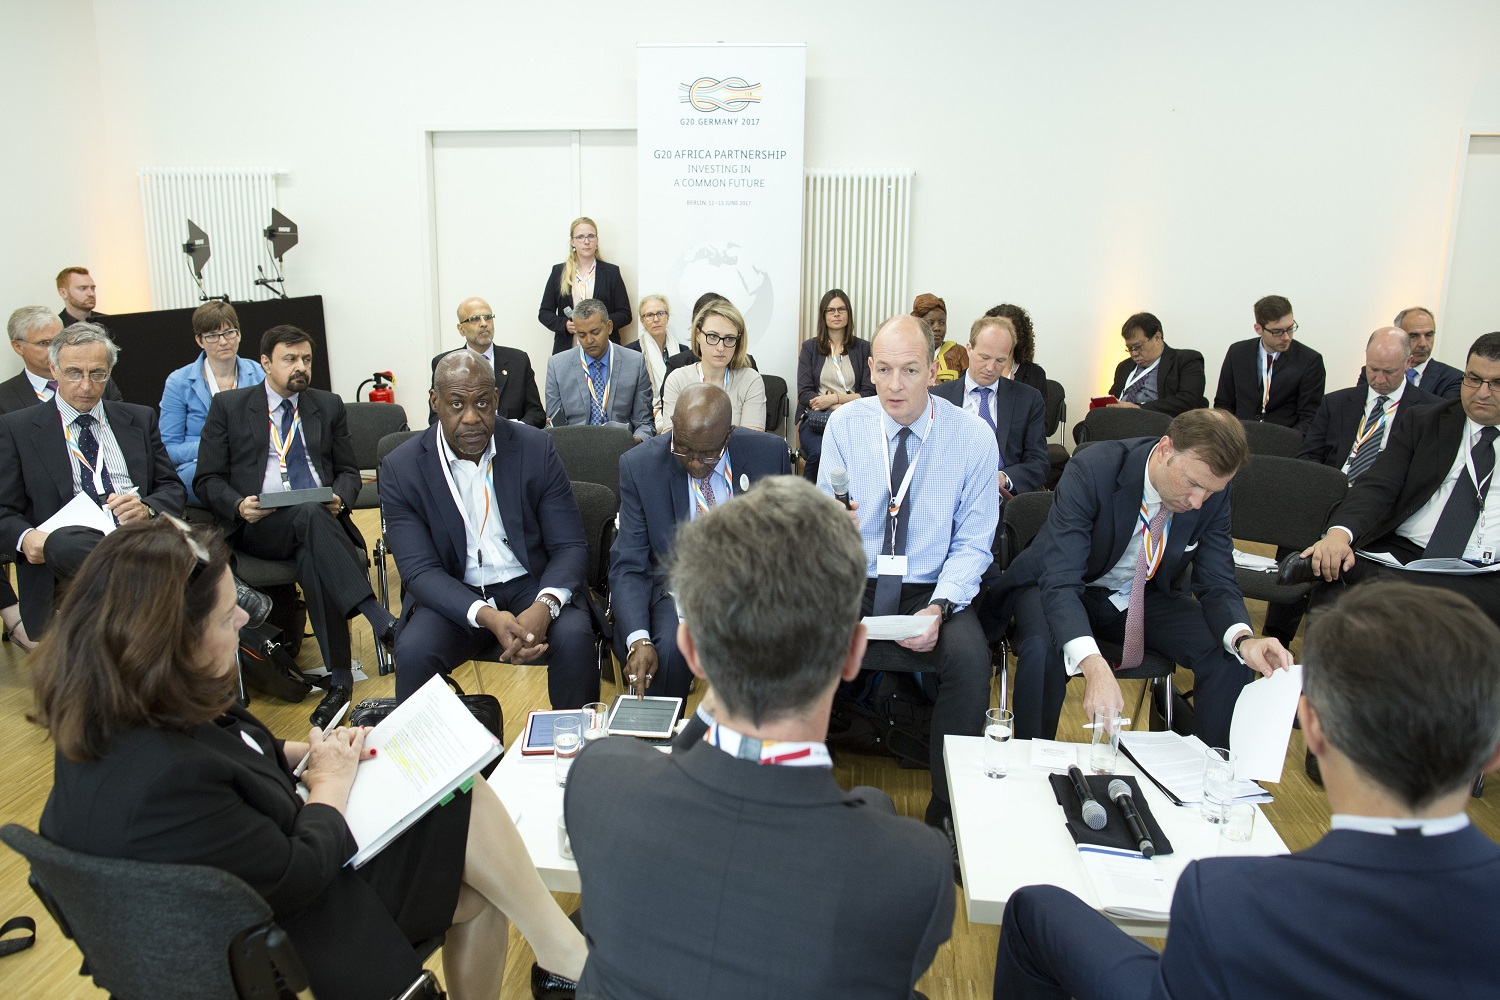 G20 Africa Partnership